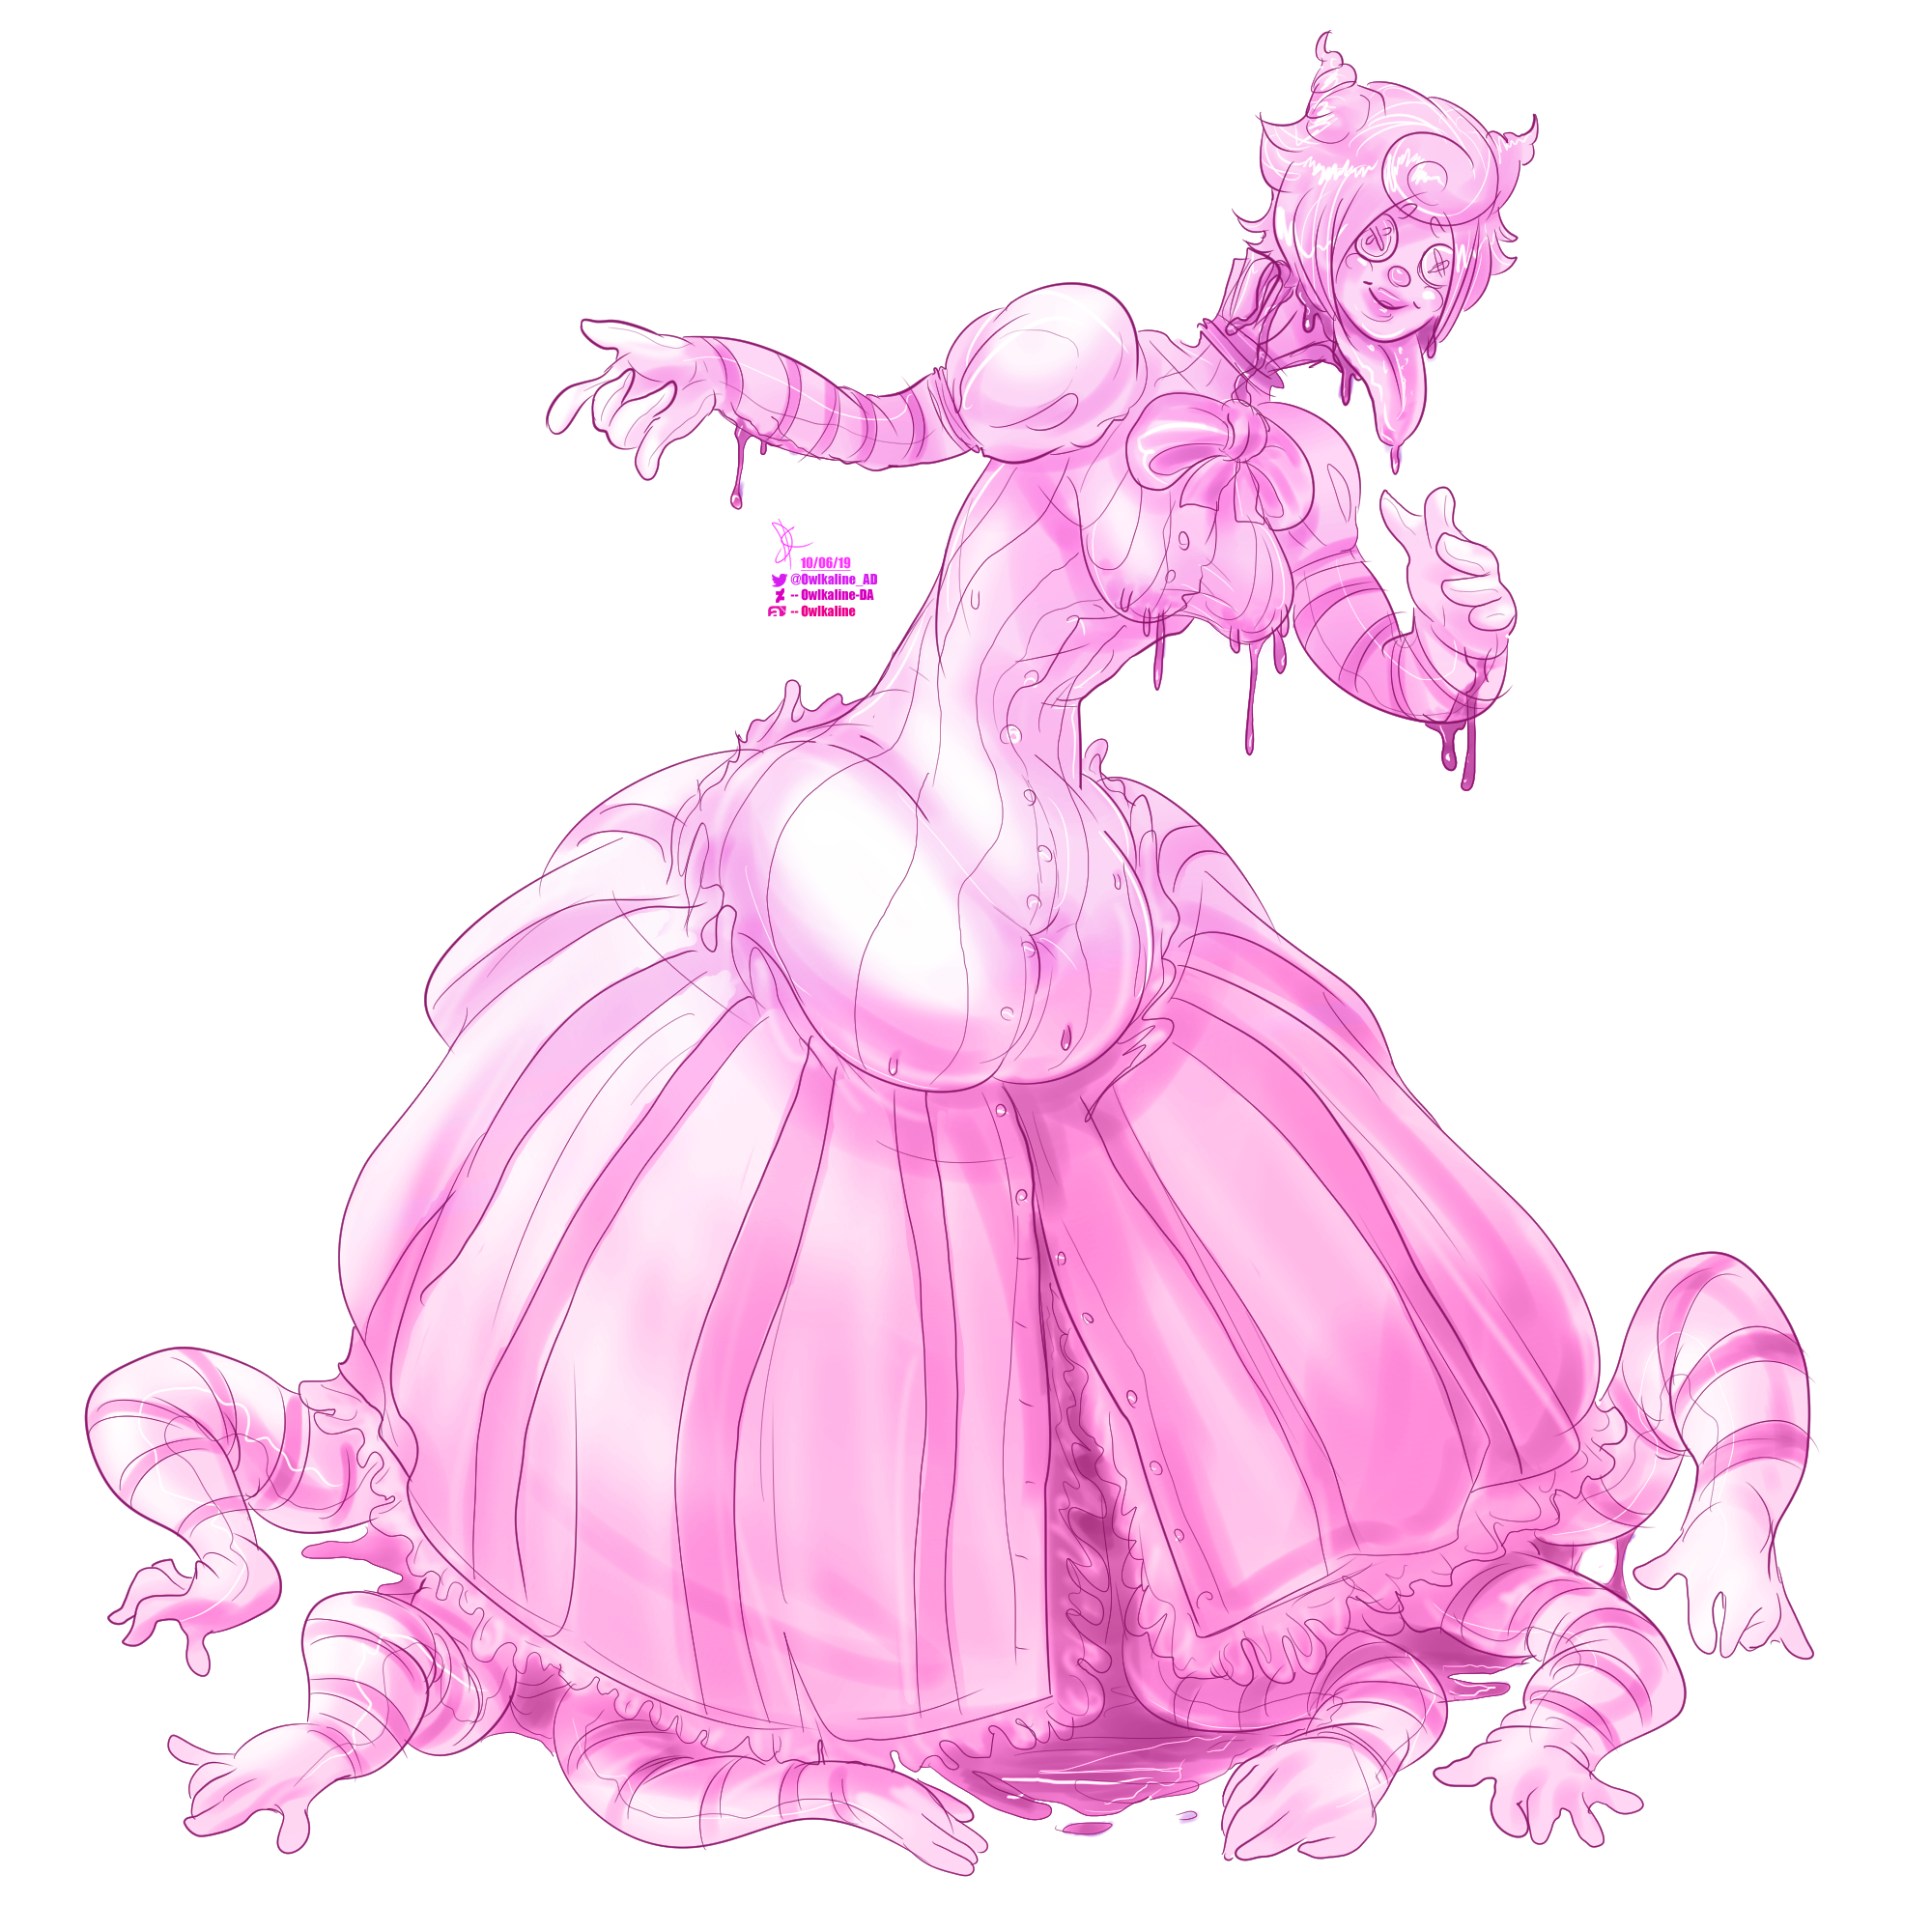 Clown Jelly Commission